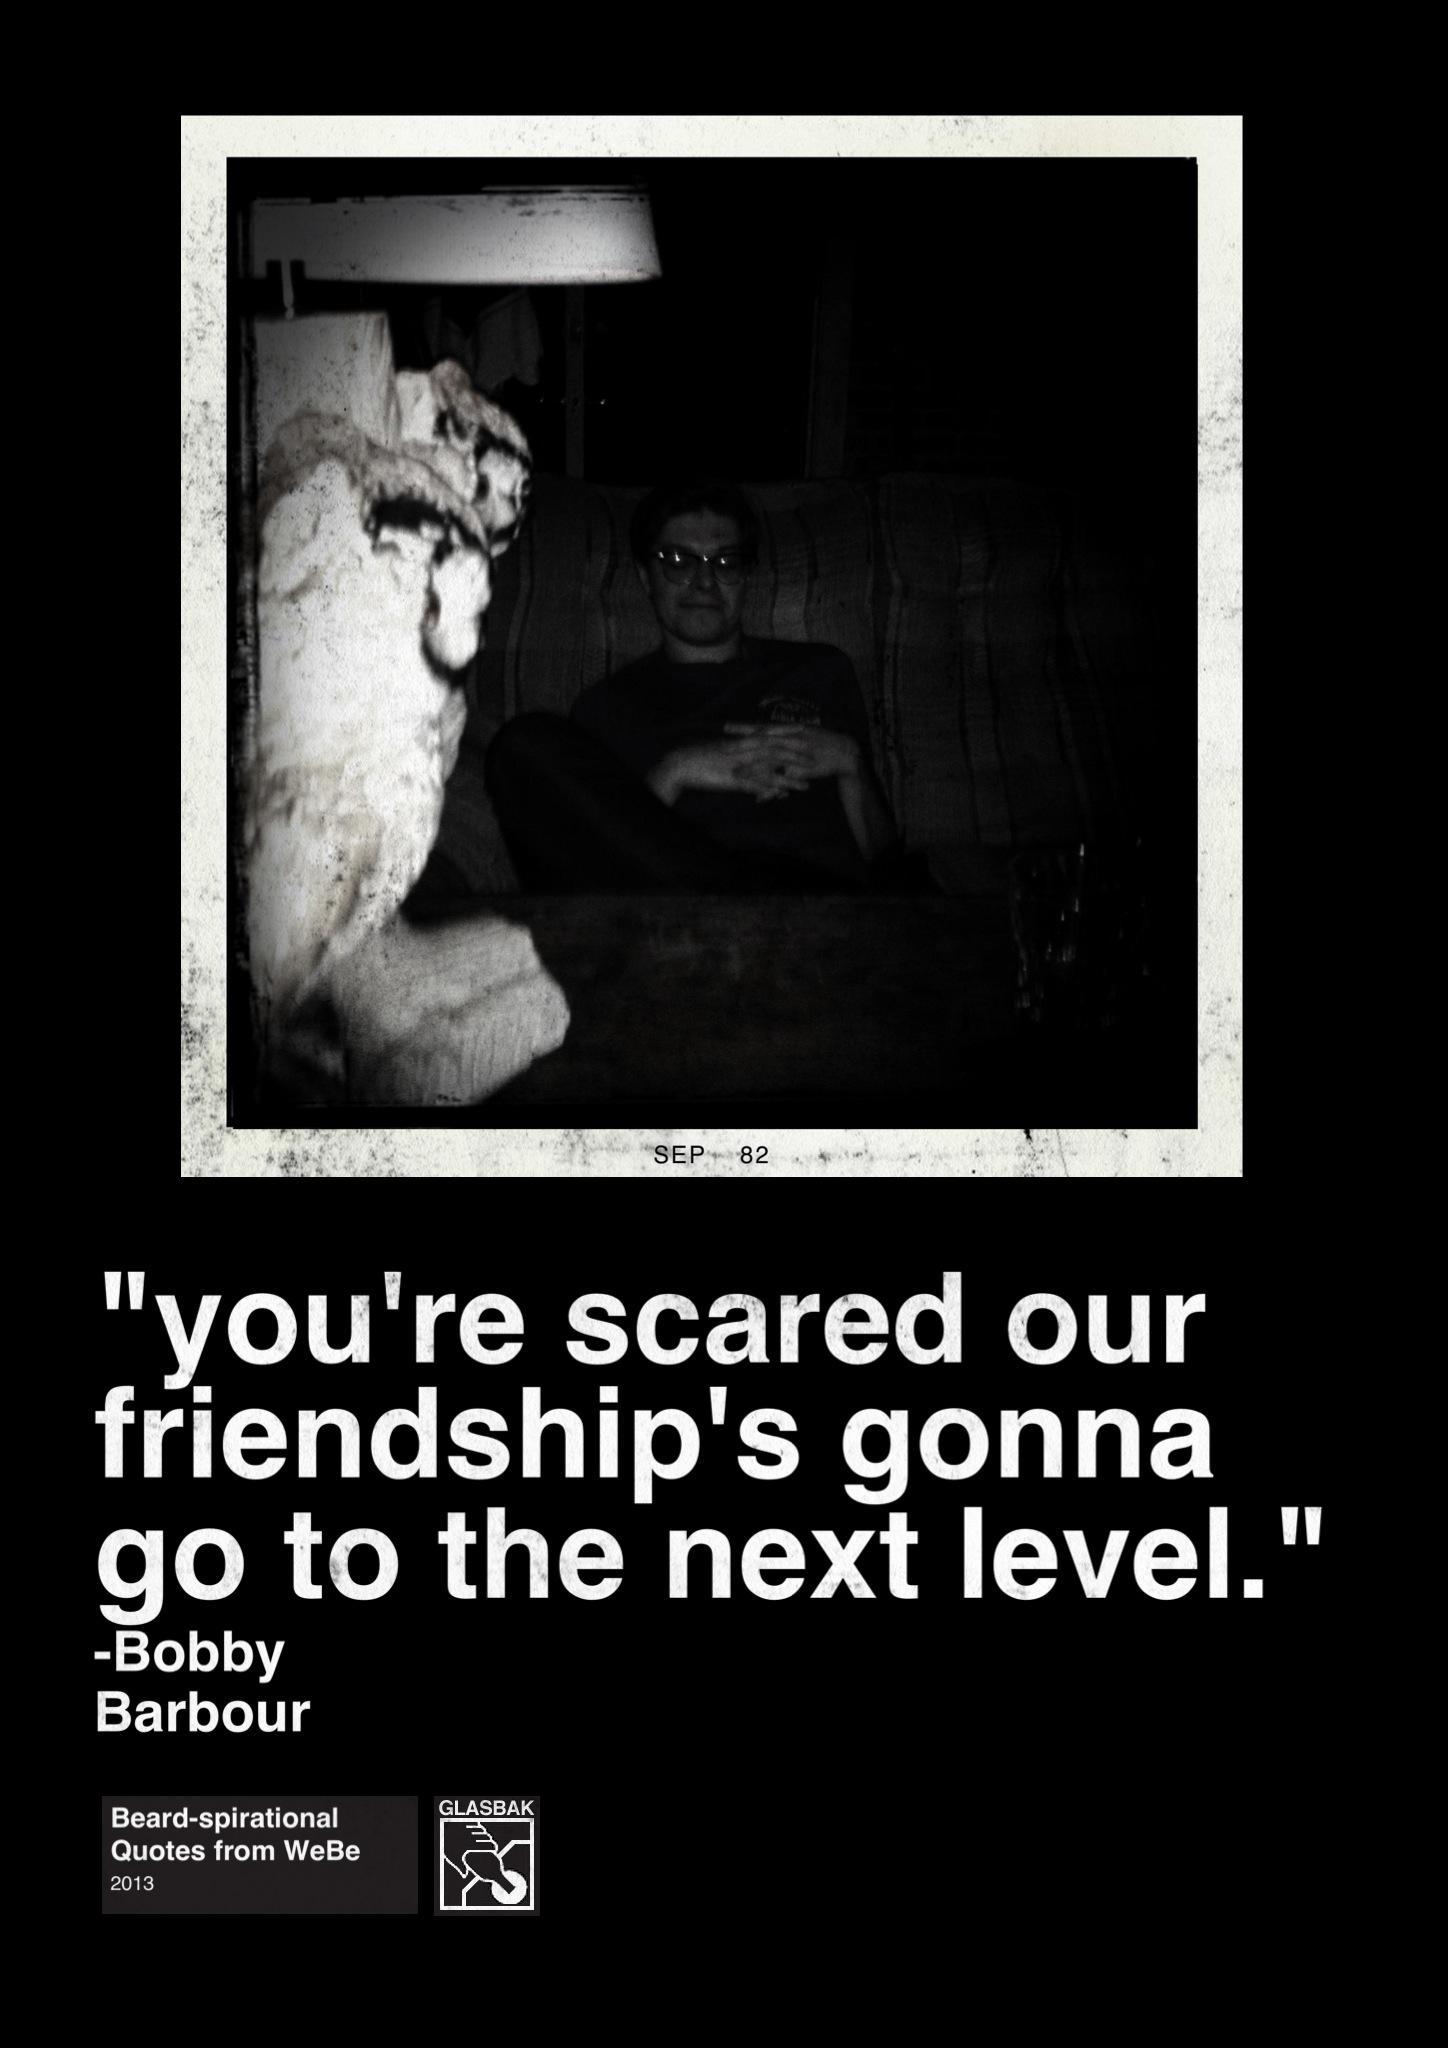 2013-01-29_you're scared our friendship's gonna go to the next level.jpg